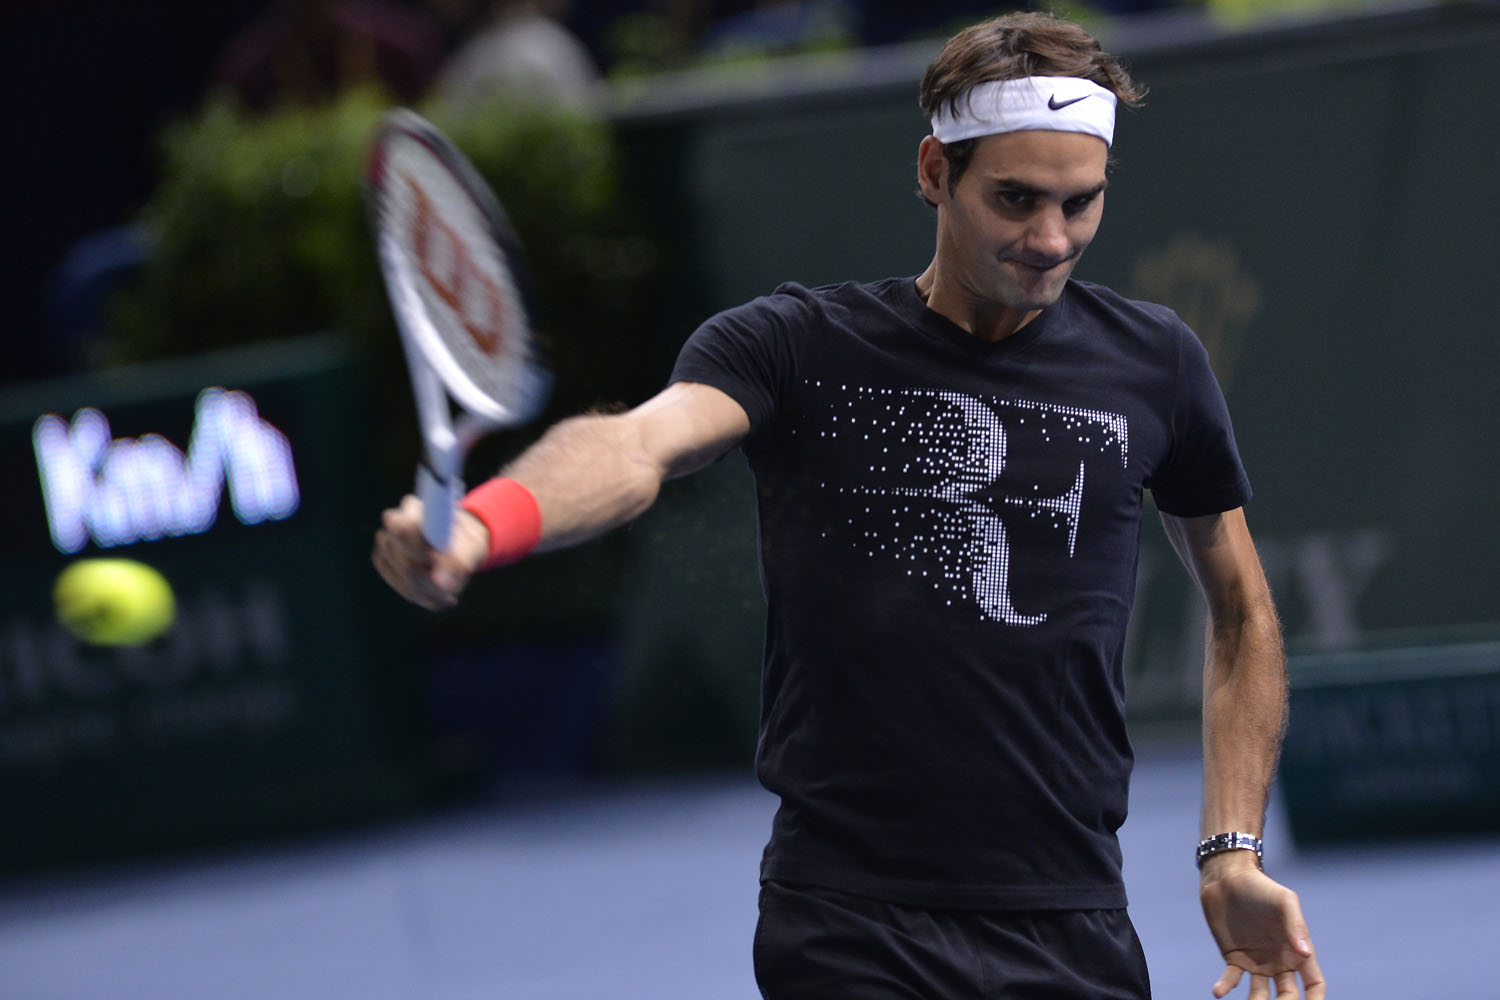 Switzerland's Roger Federer attends a training session at the ninth and final ATP World Tour Masters 1000 indoor tennis tournament on October 28, 2013 at the Bercy Palais-Omnisport (POPB) in Paris.